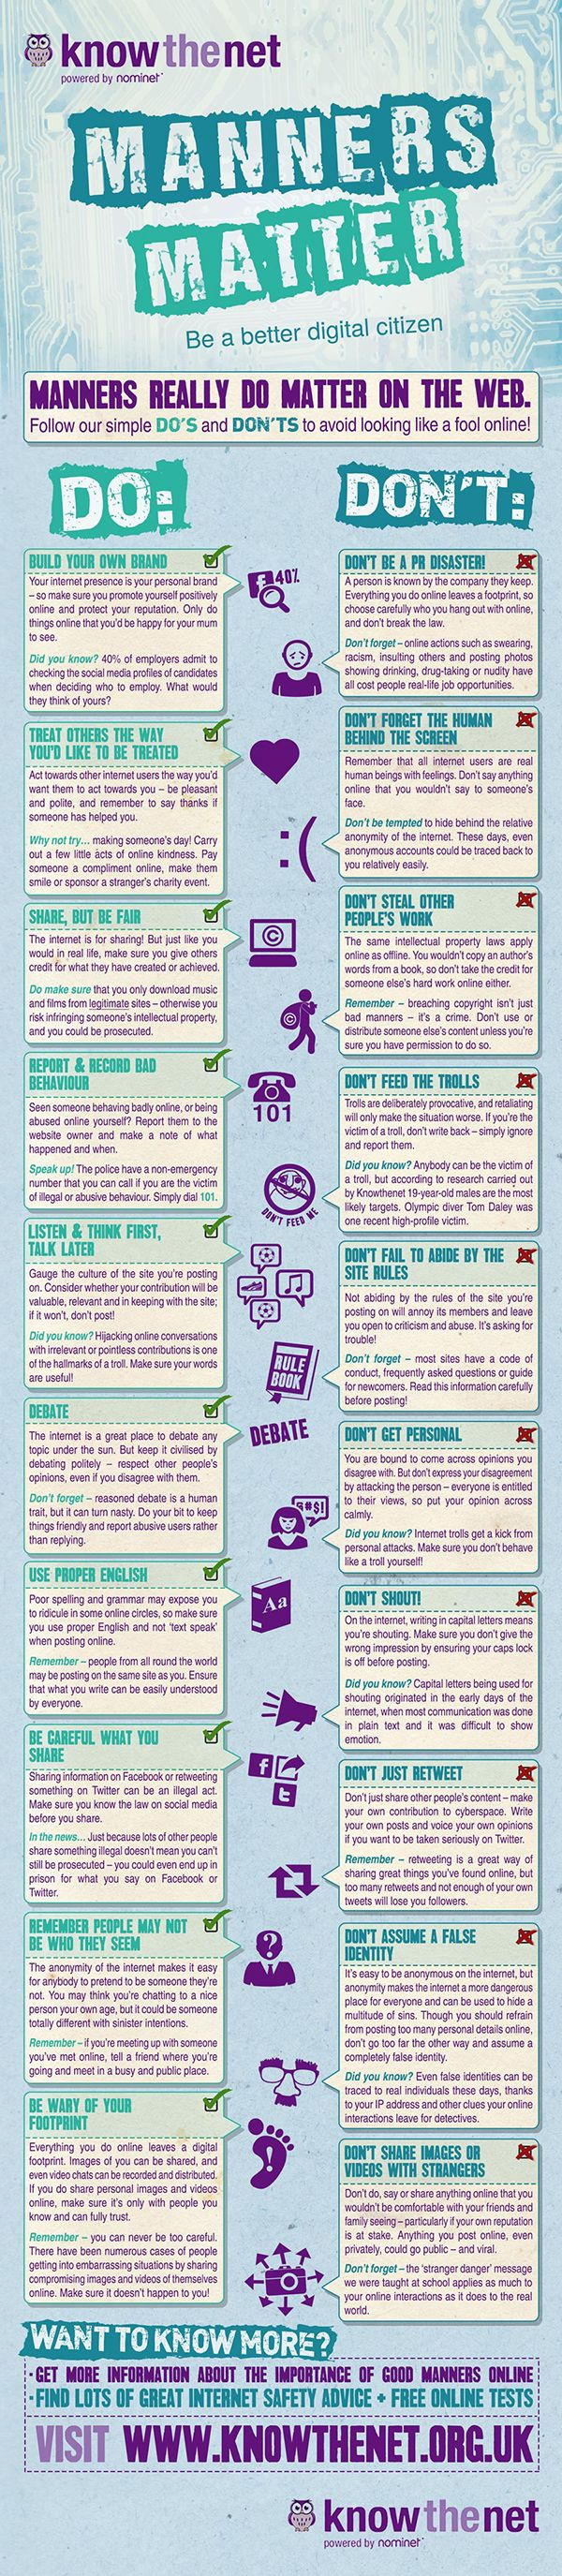 tips and pieces of advice on how to develop good manners online. Look at it as a code of online ethics to recommend not only to your students but to your kids as well. You can also print it and hang it on your classroom wall to constantly remind students of what is expected from them while using the world wide web